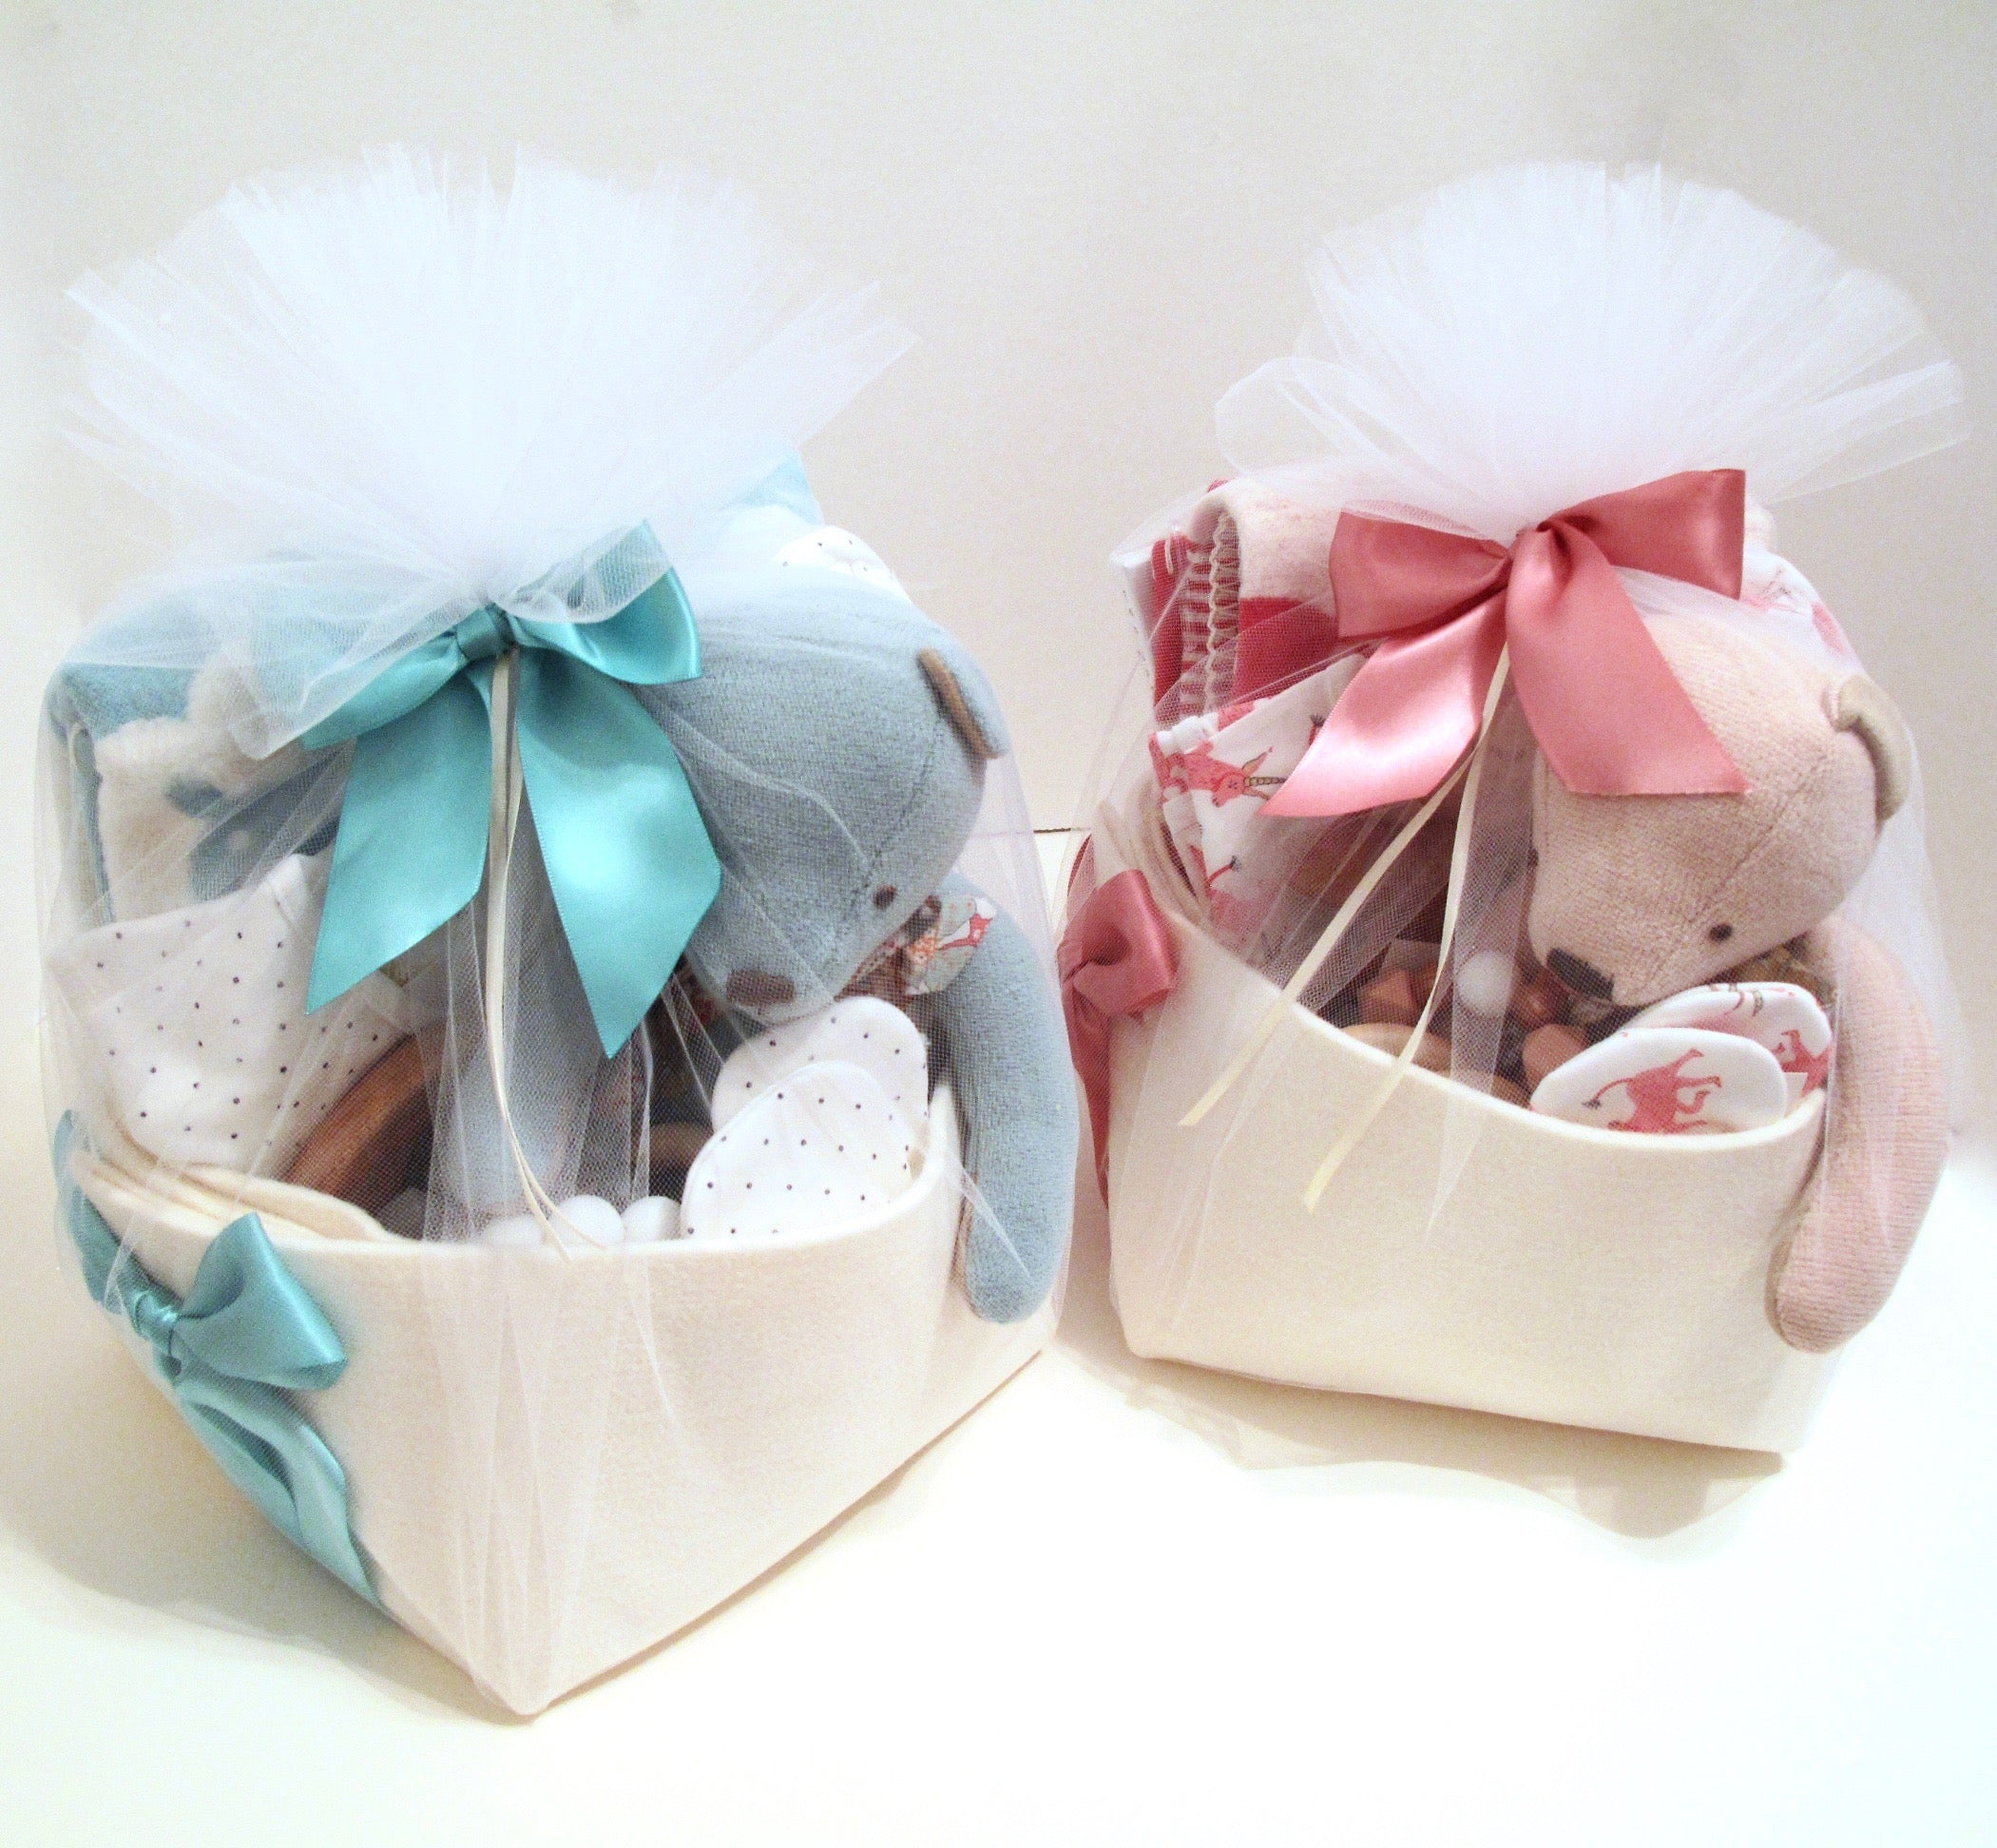 Twins Baby Gifts at Bonjour Baby Baskets